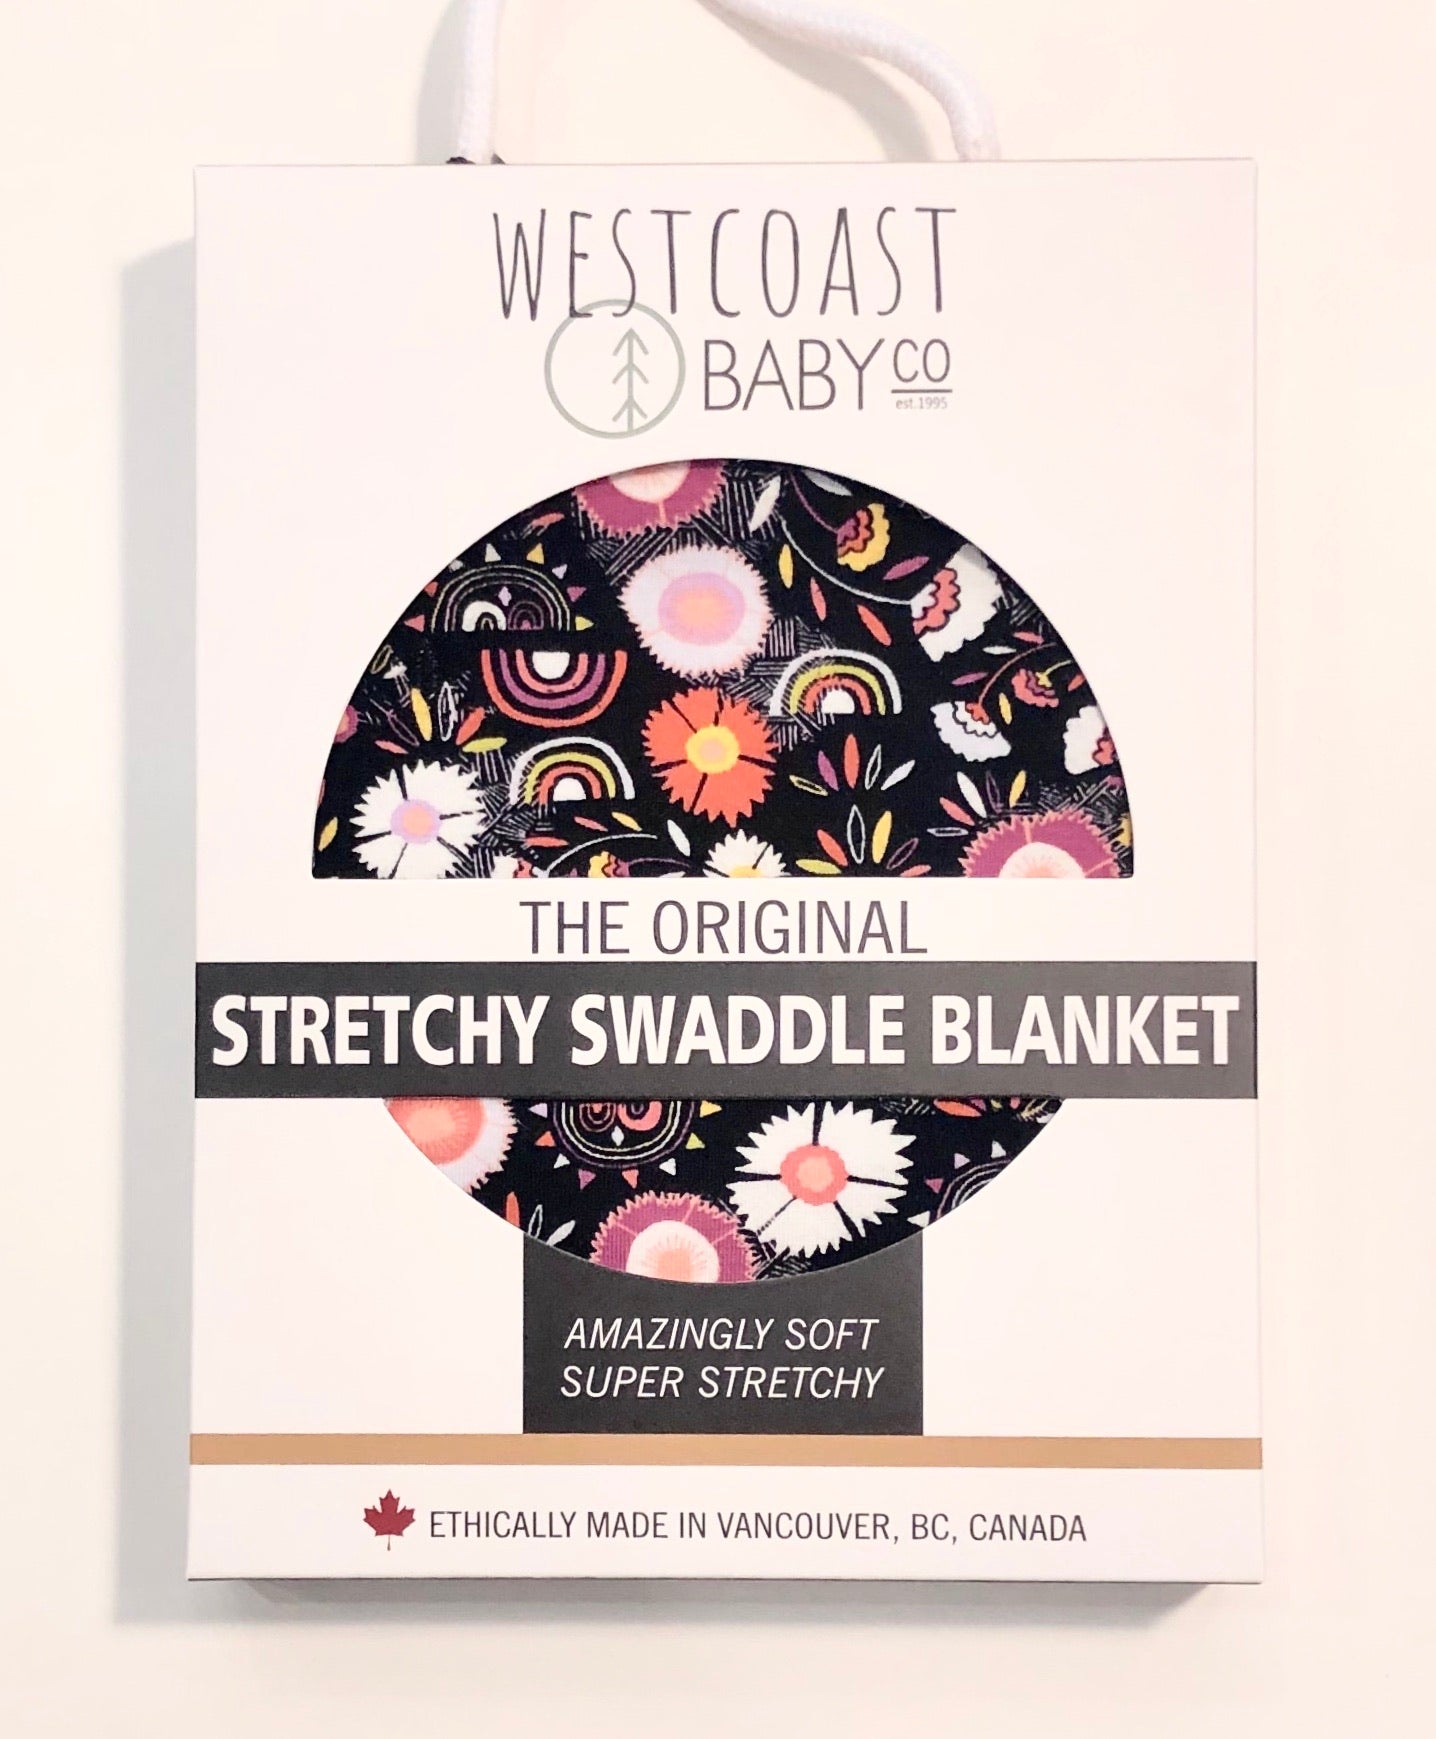 Sample Sale! Sidney Swaddle Blanket and Bonus Hat Set - Westcoast Baby